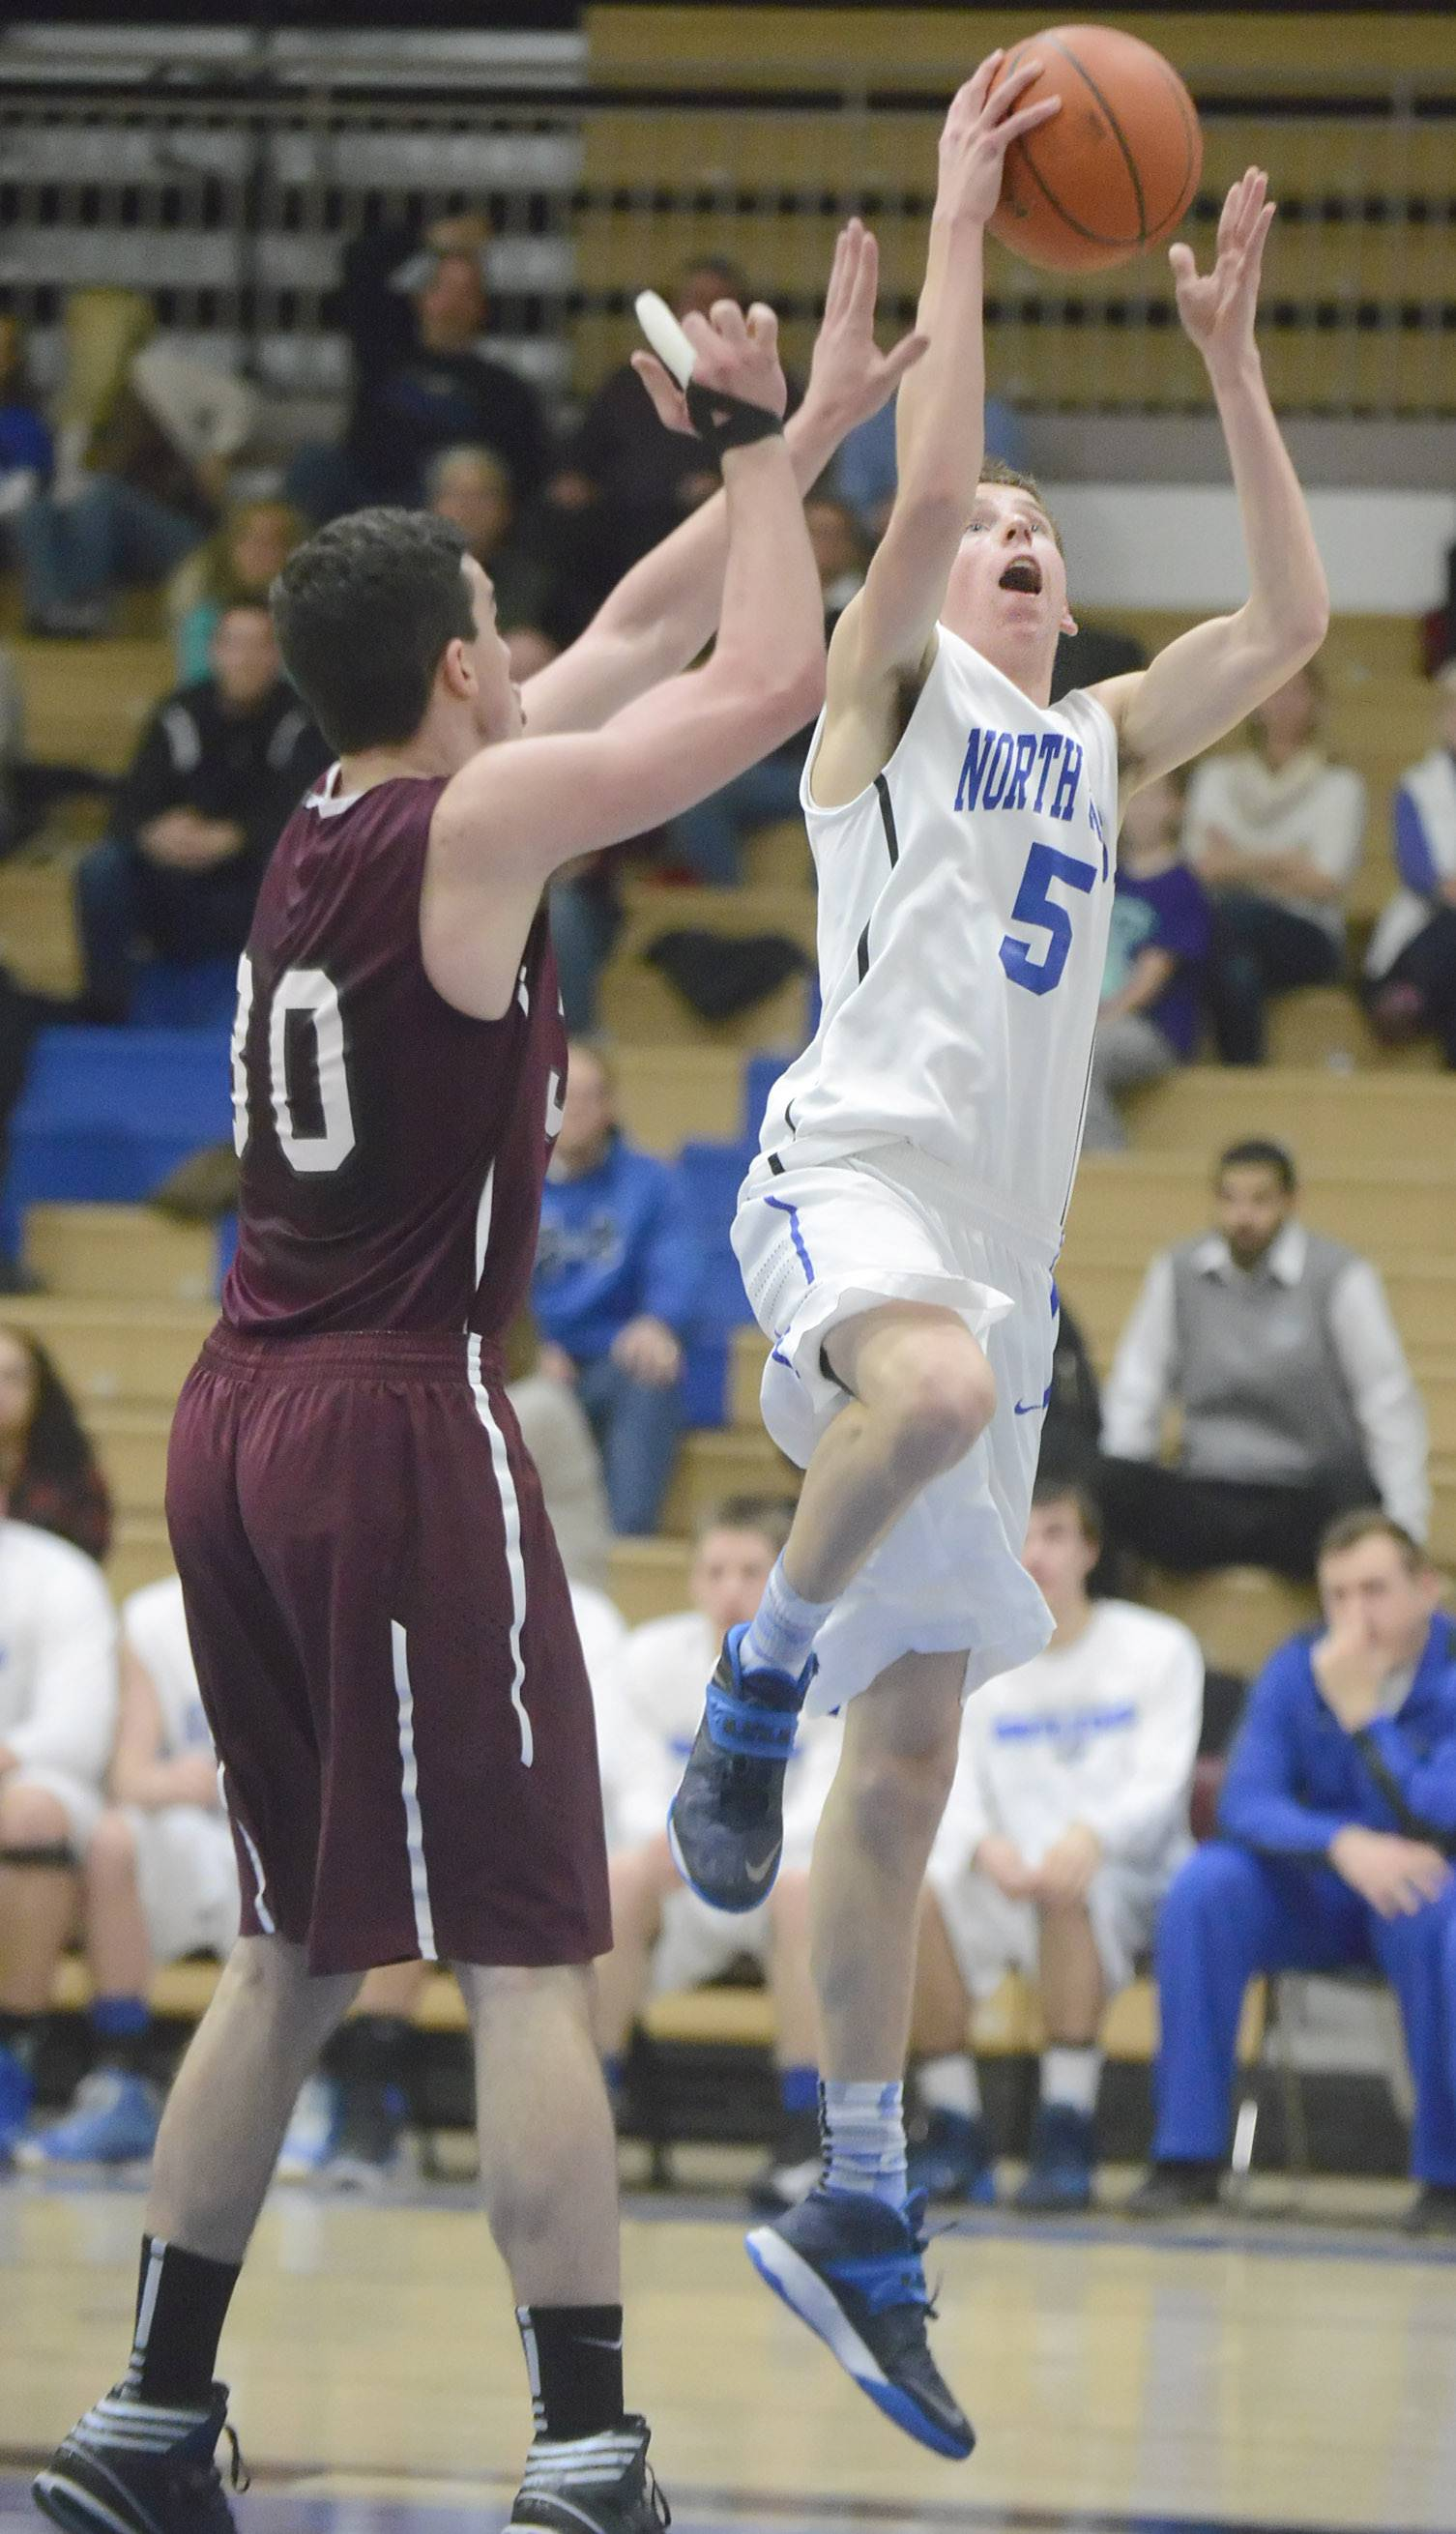 Third quarter lifts St. Charles North over Elgin